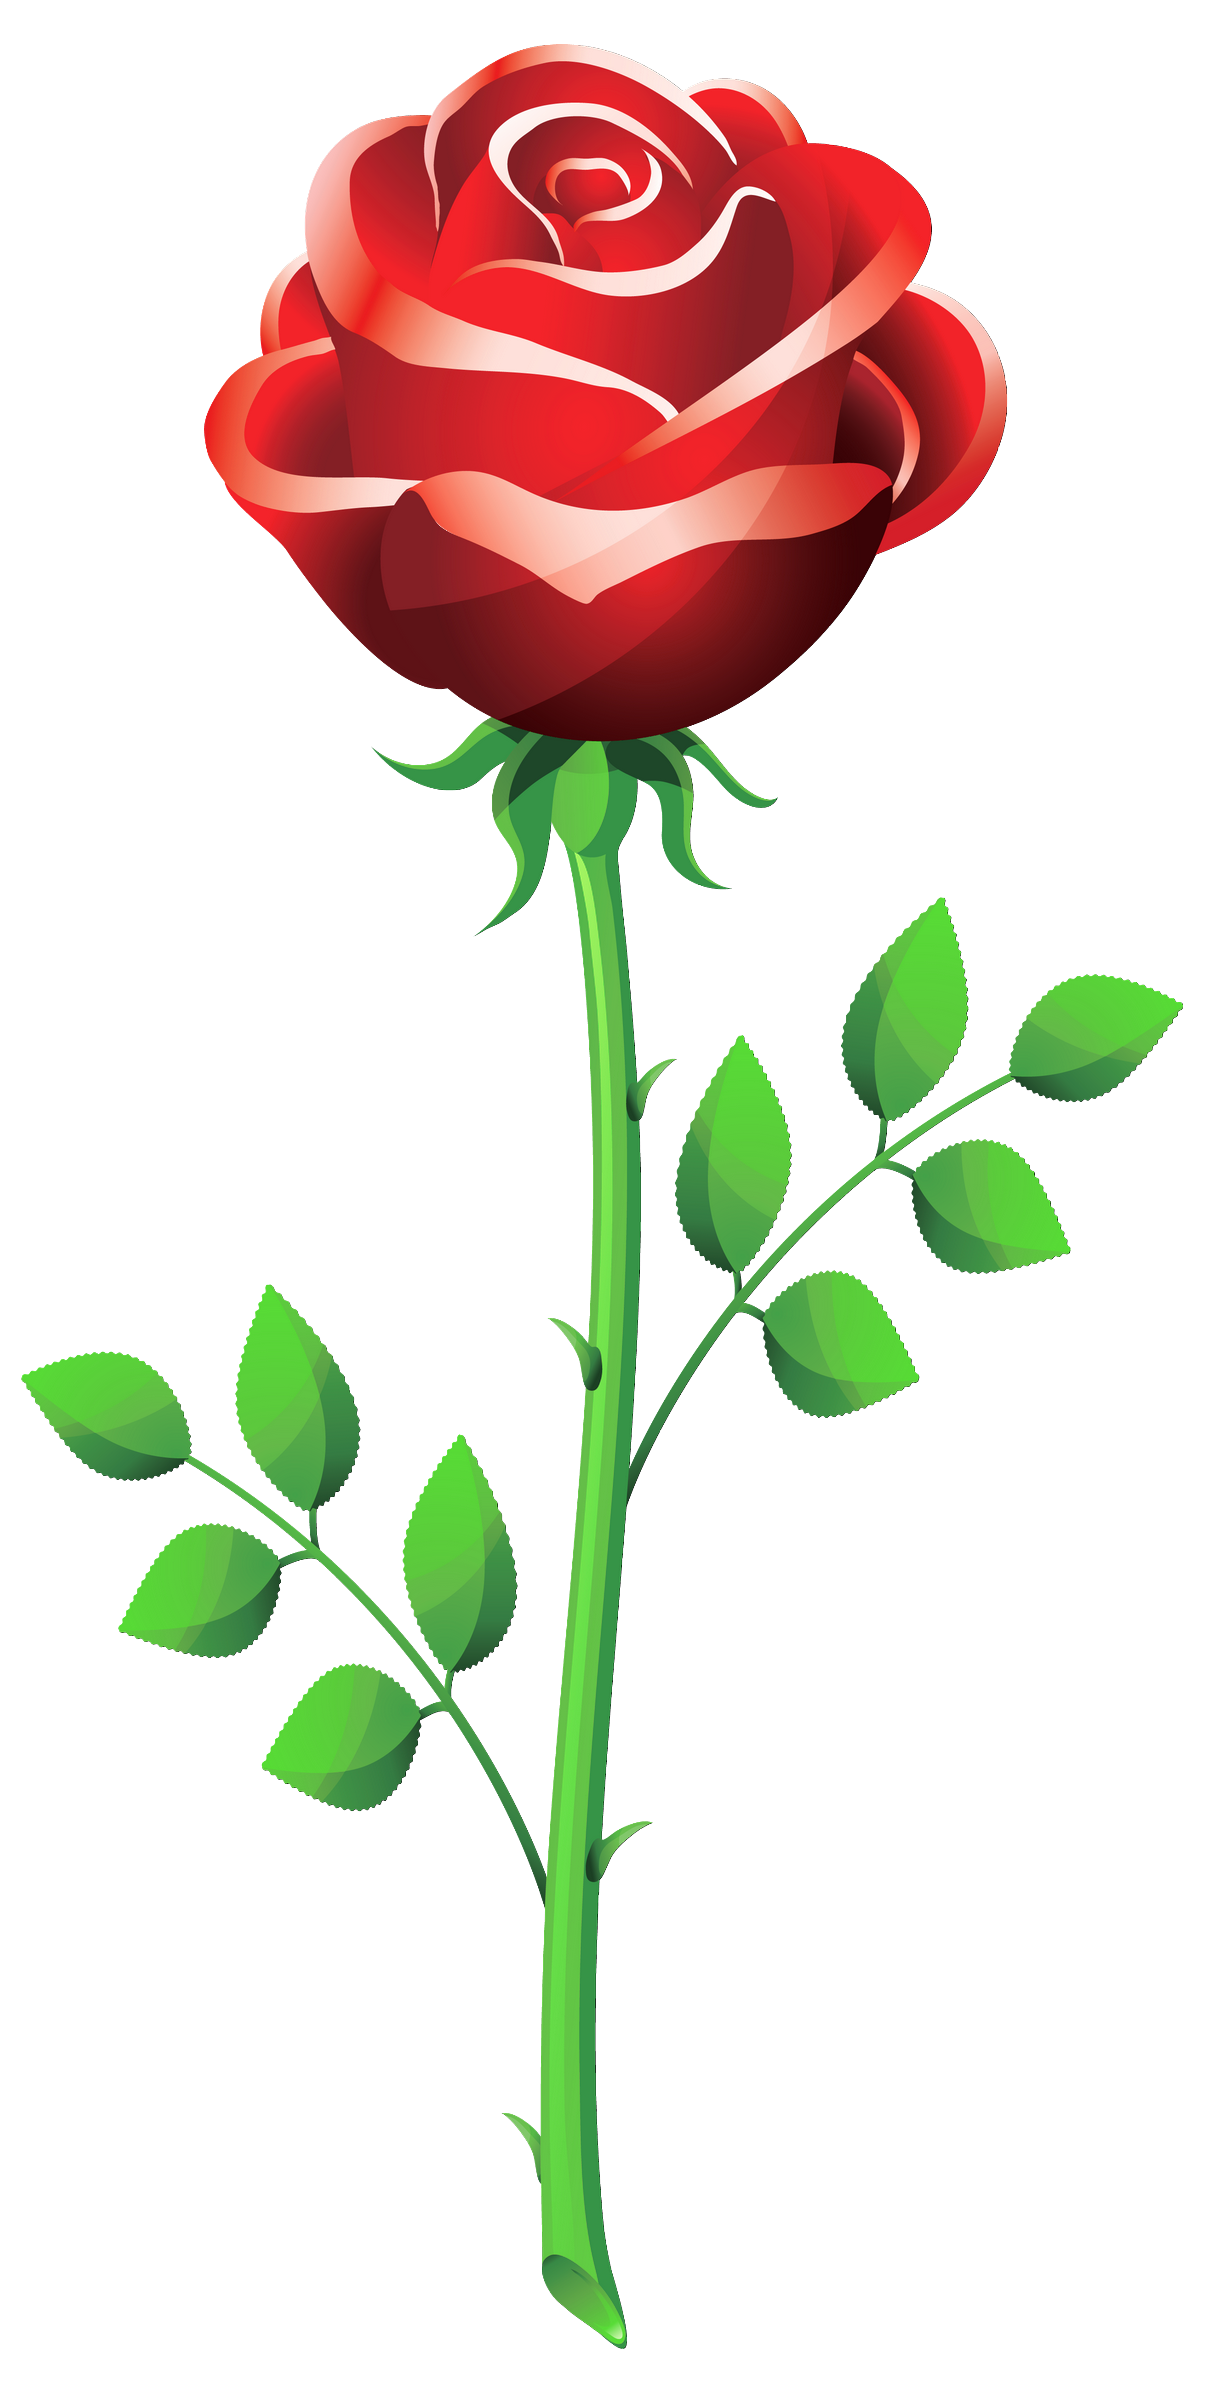 rose clip art sms - photo #4